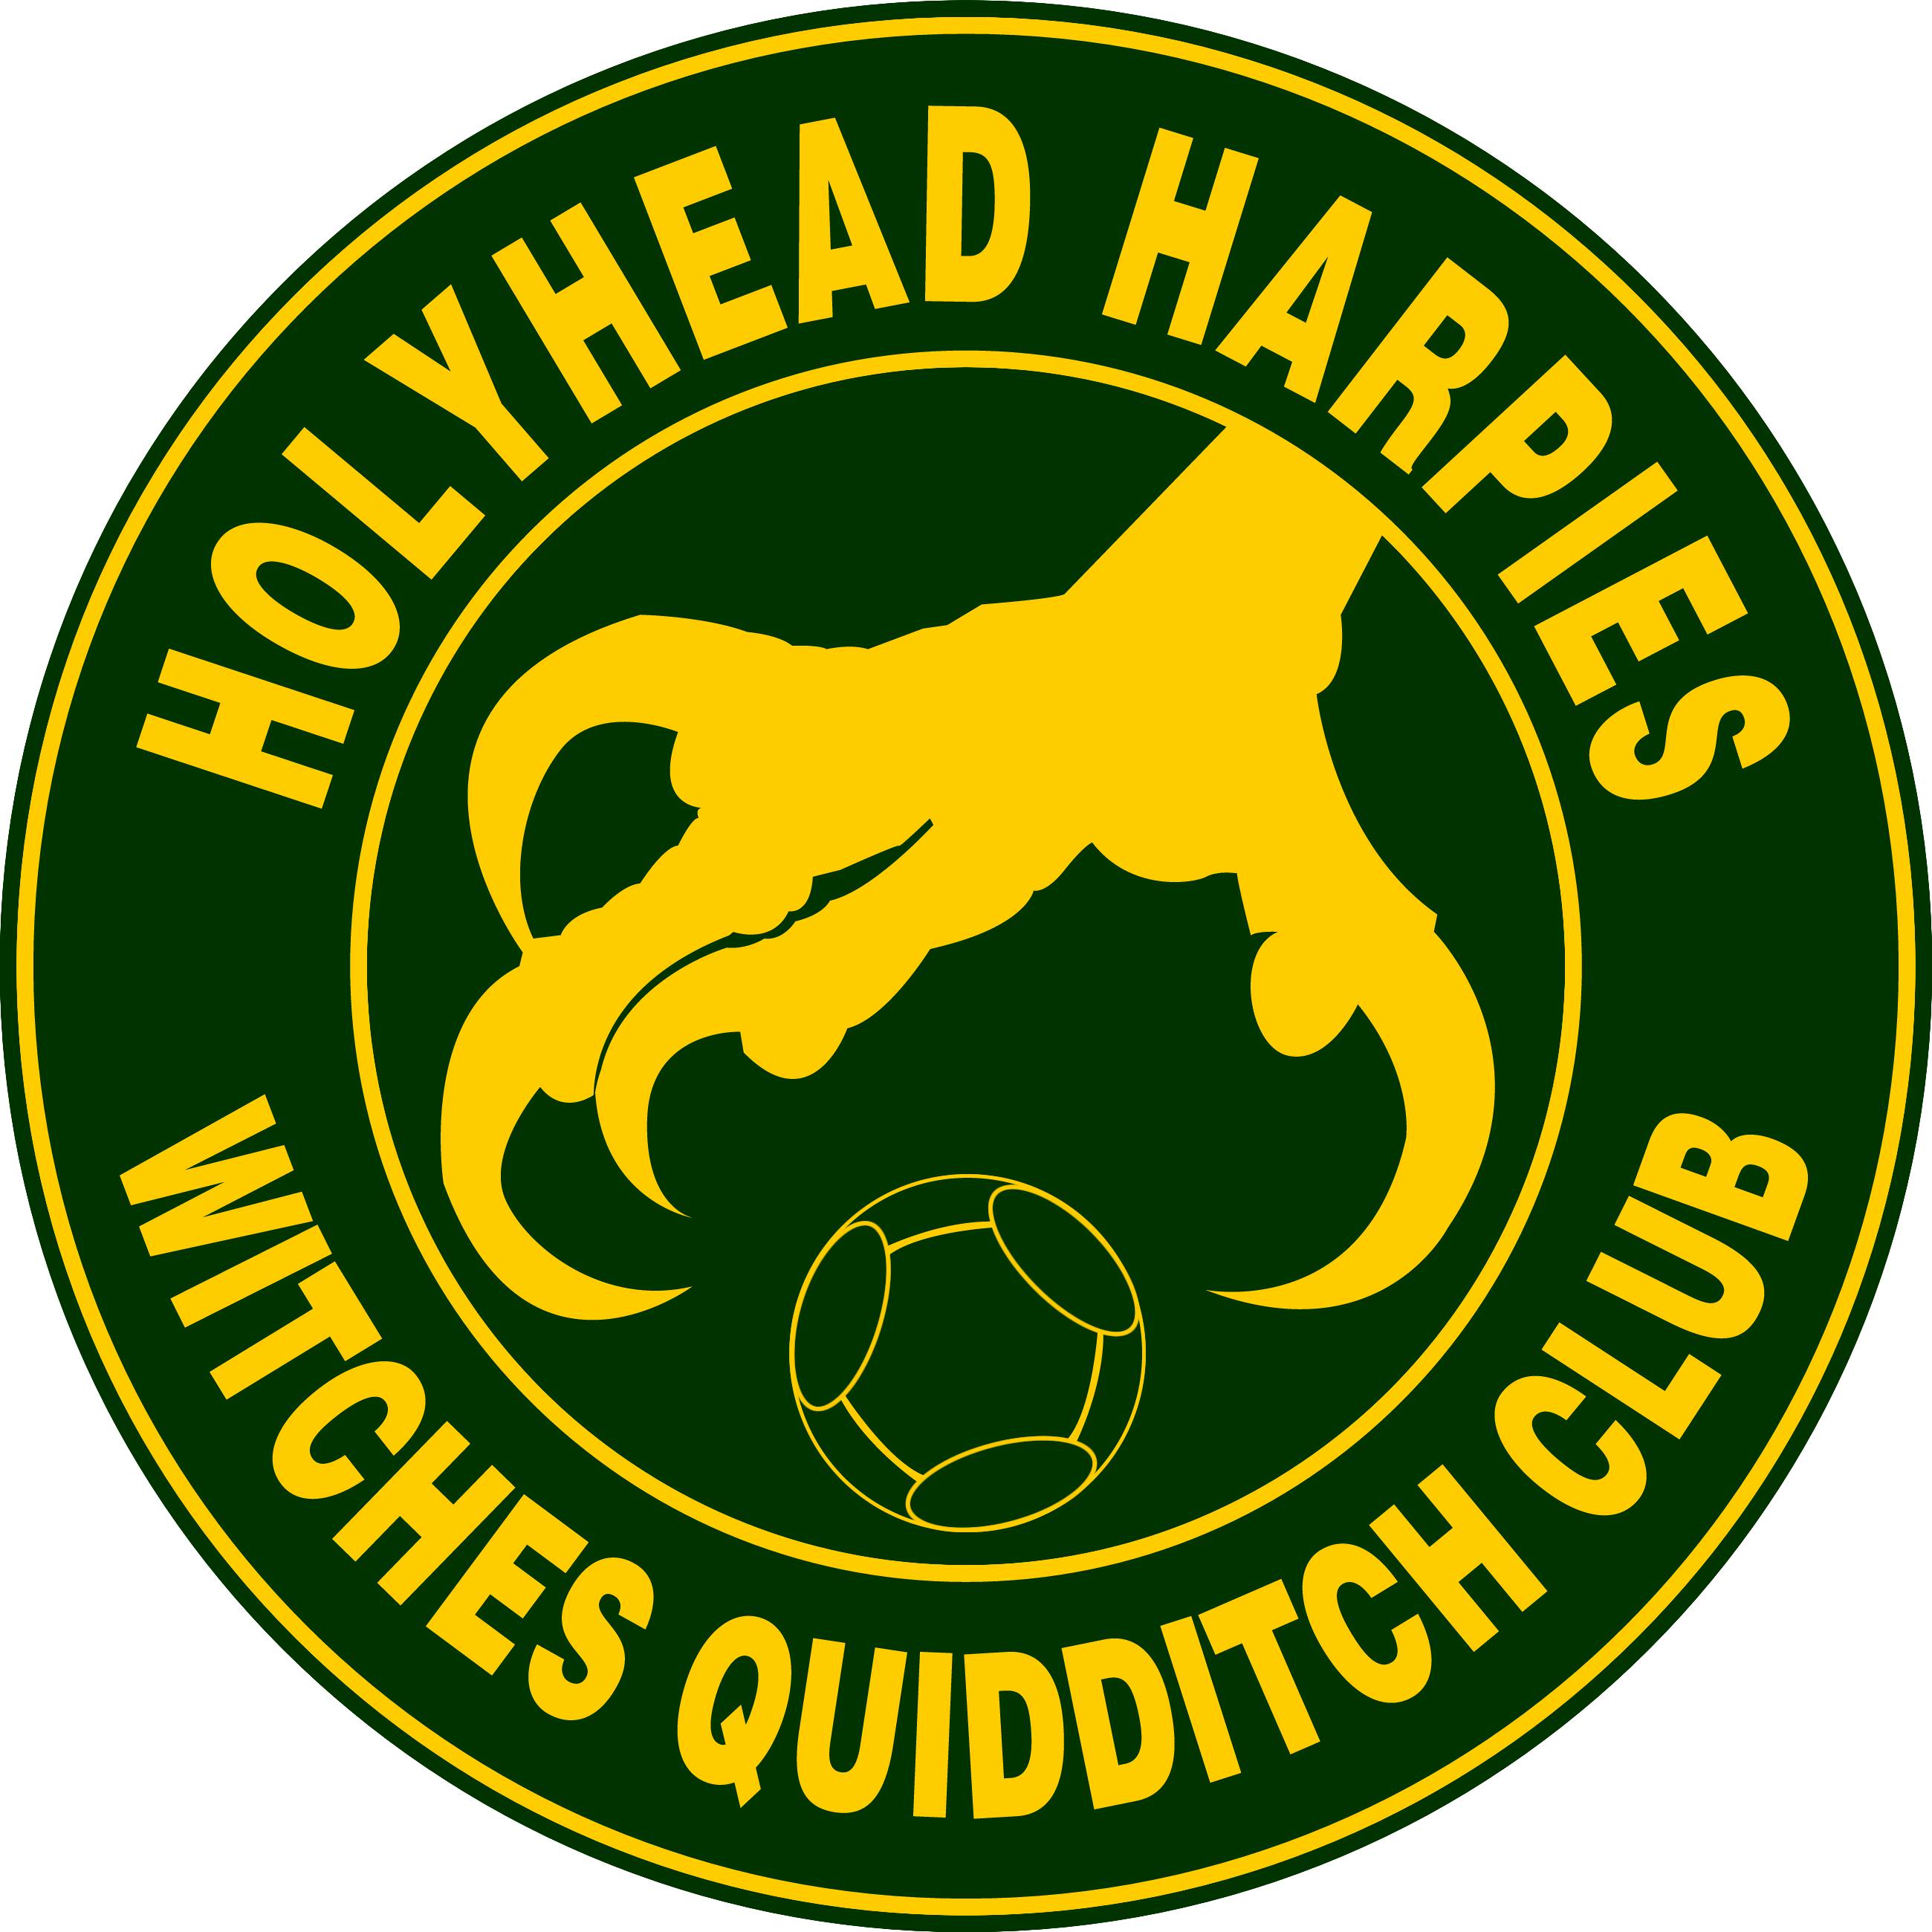 Holyhead Harpies Quidditch Team logo